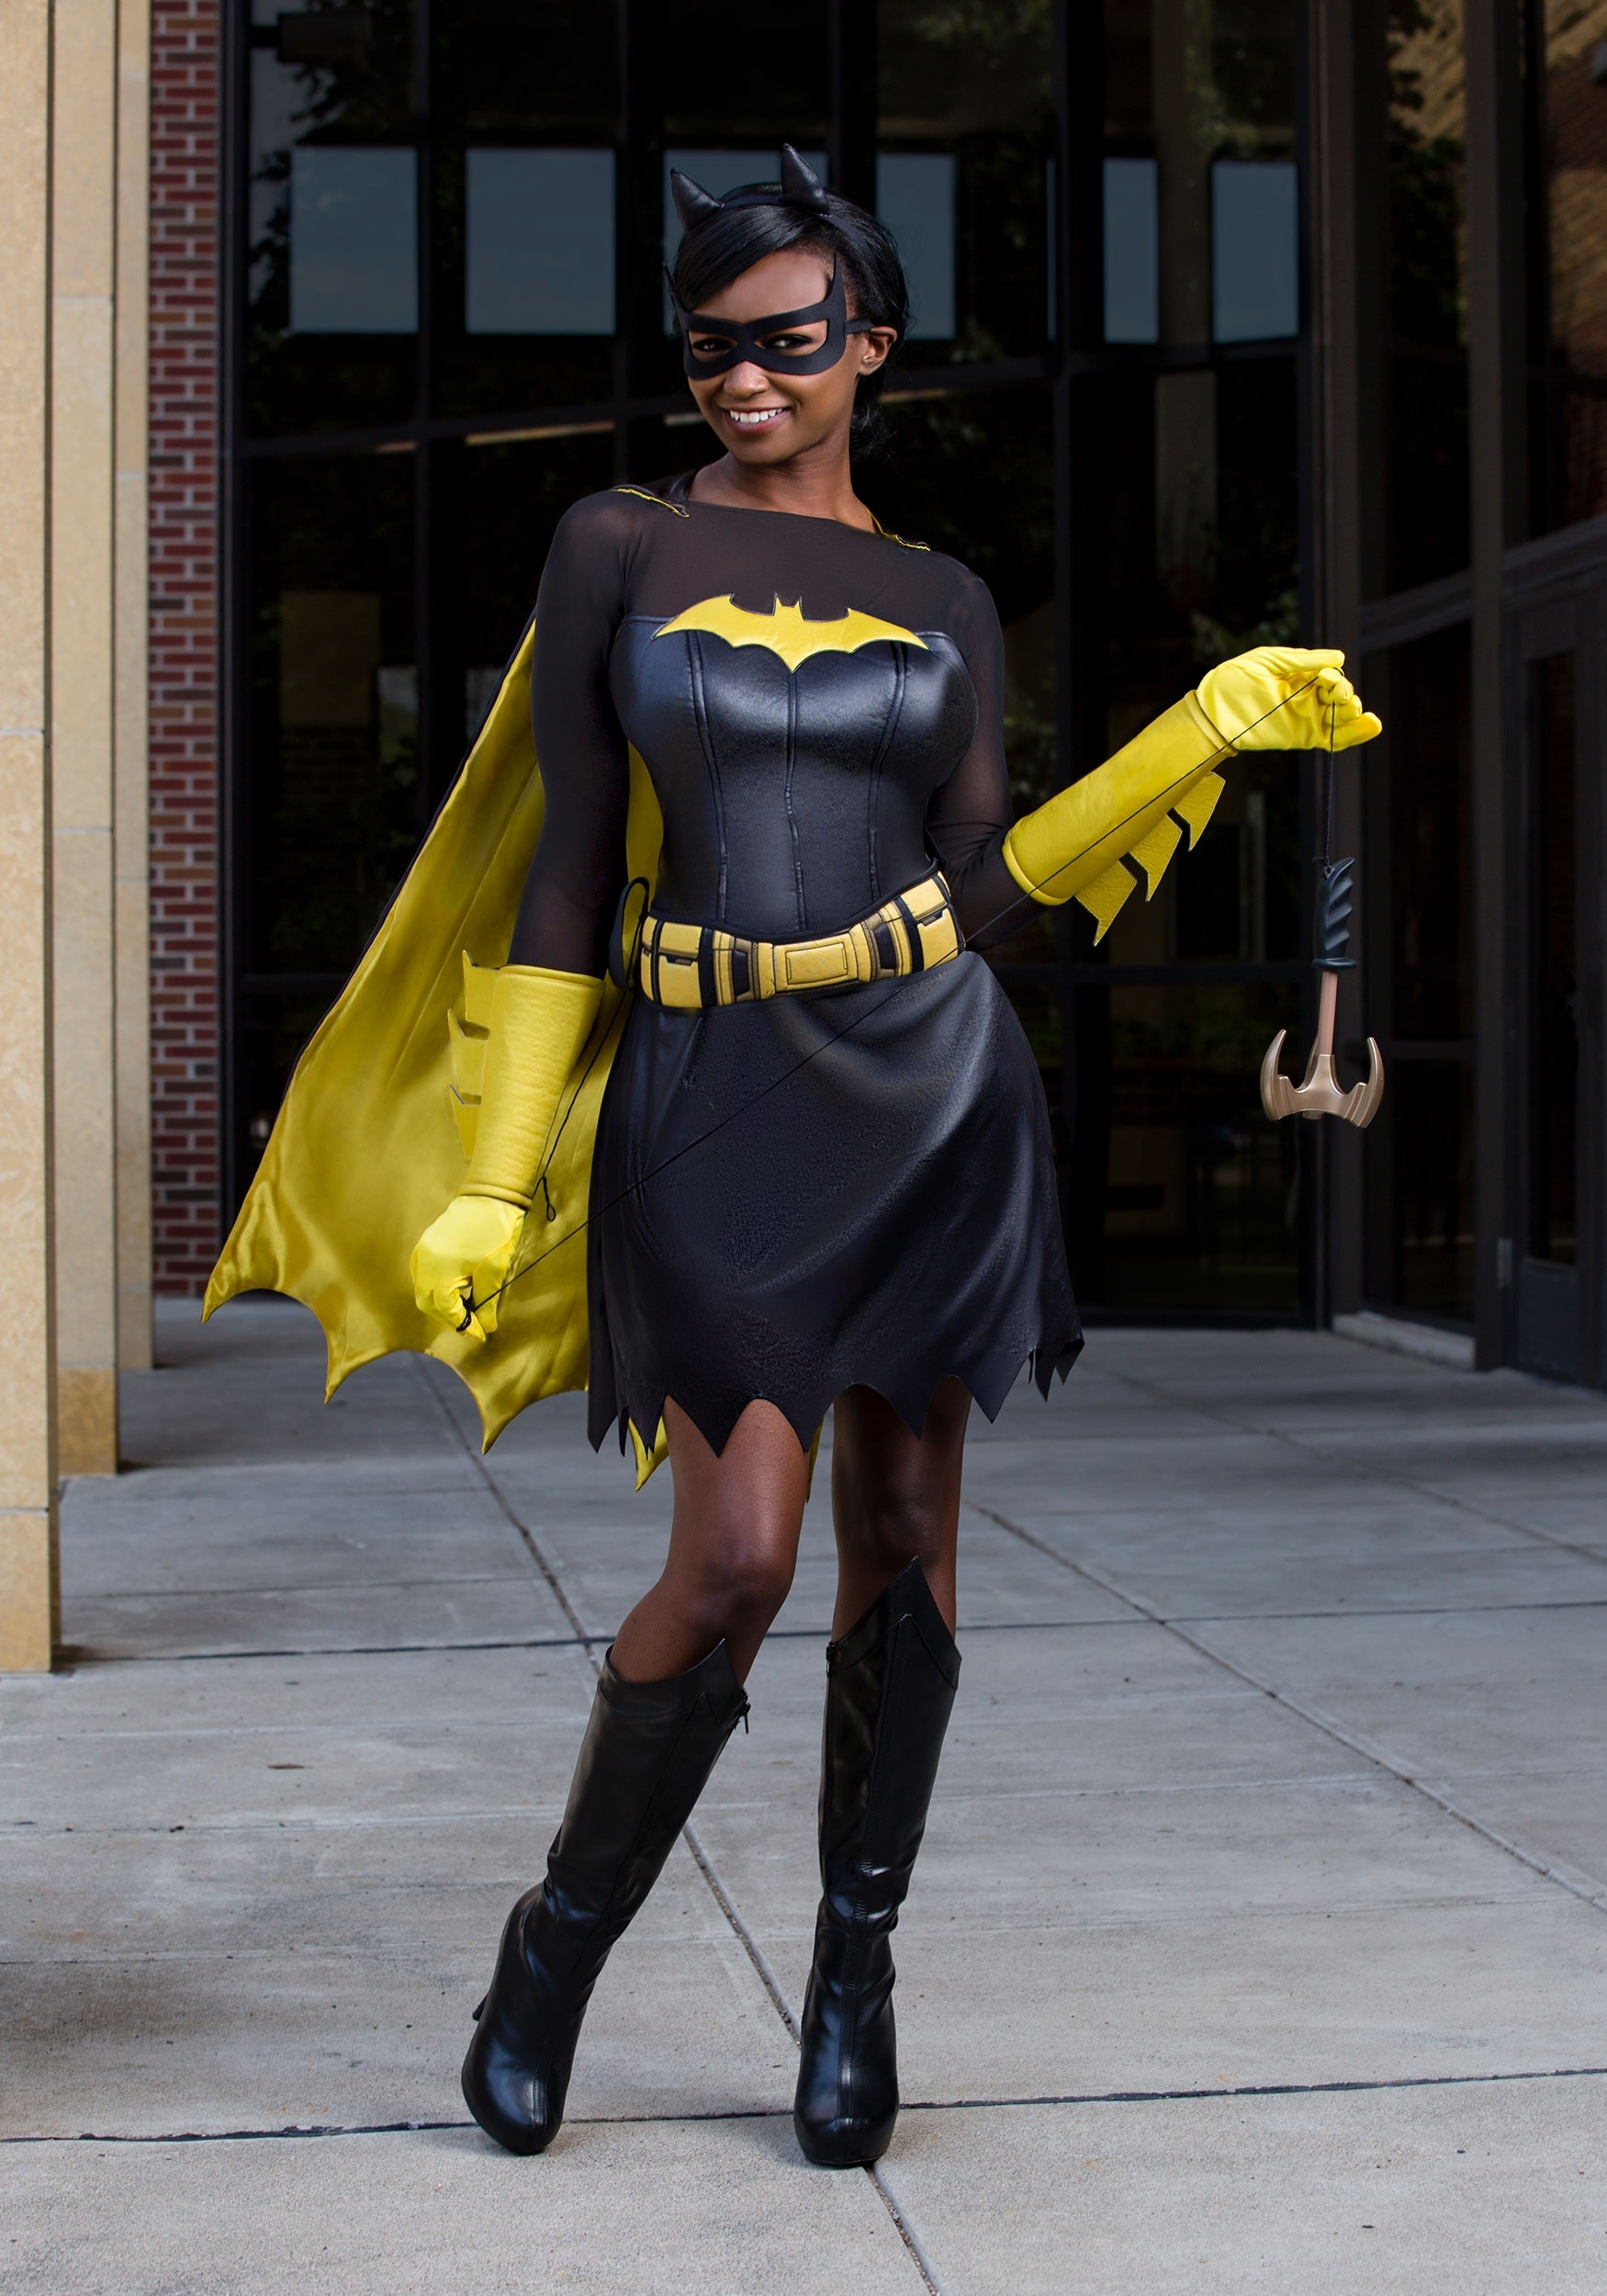 Superhero Costumes For Women Female Superhero Costumes Halloween